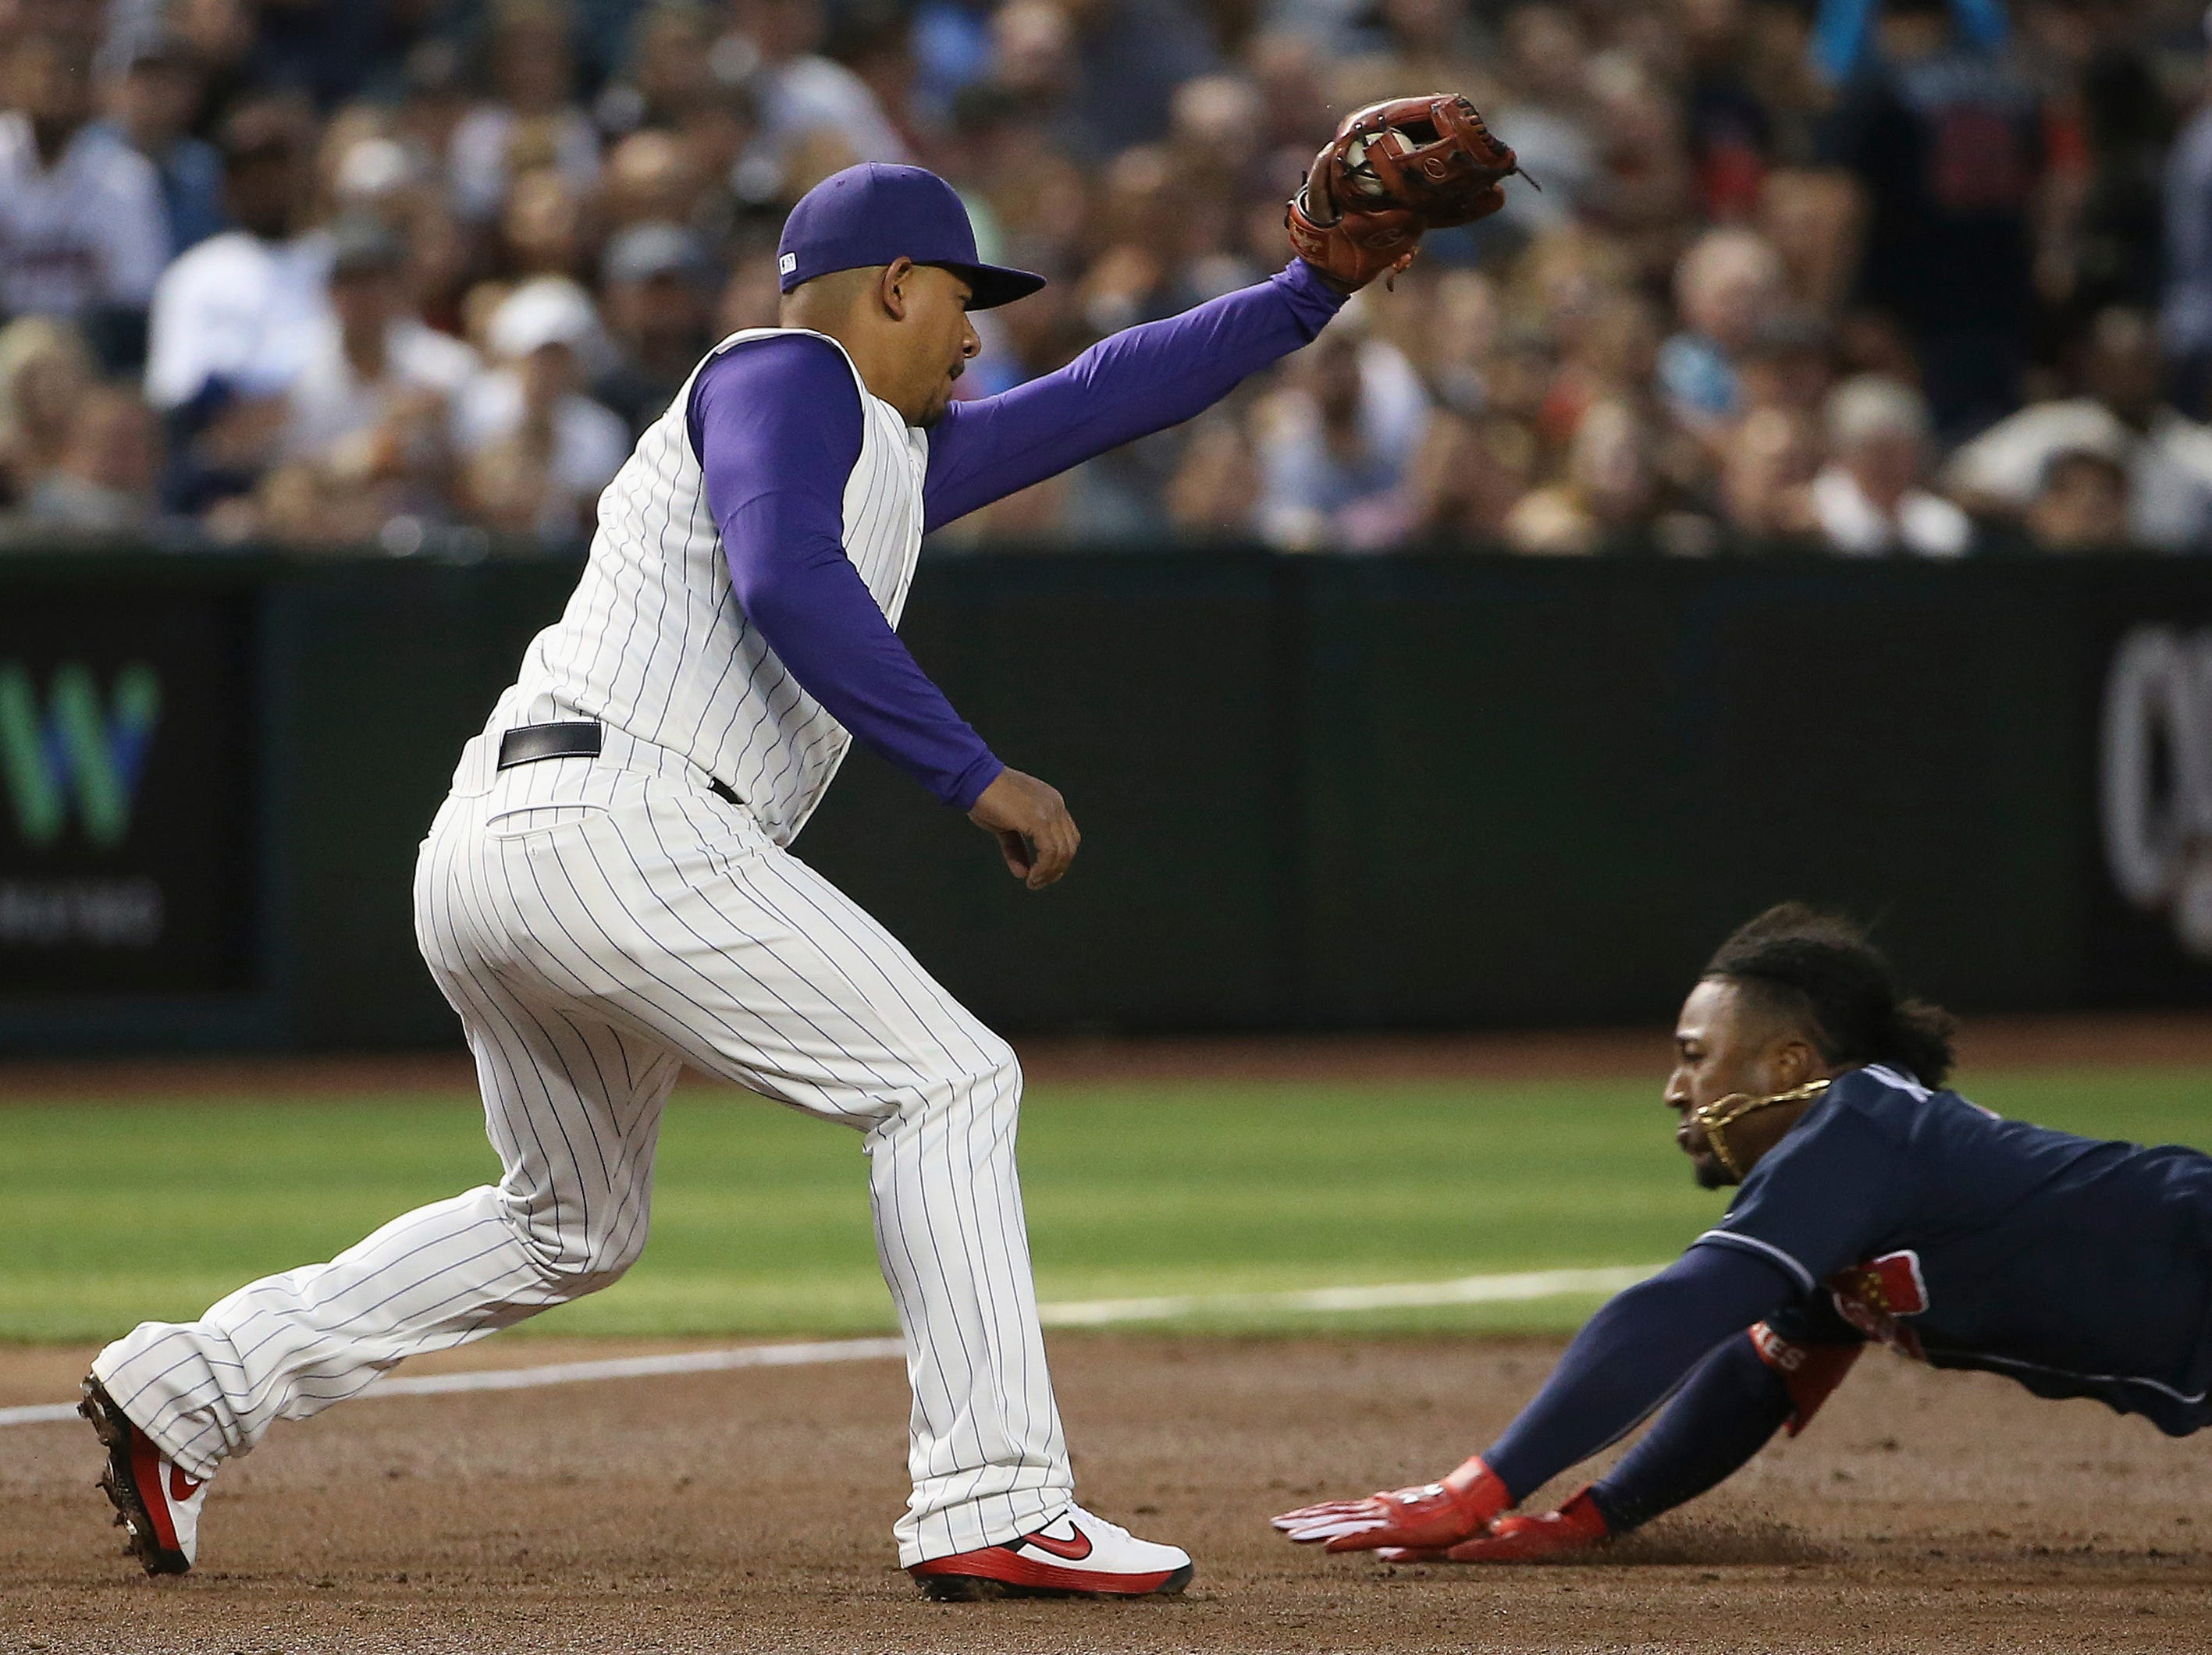 Arizona Diamondbacks third baseman Eduardo Escobar, left, makes a catch before tagging out Atlanta Braves' Ozzie Albies at third base as Albies tried to stretch a double into a triple during the third inning of a baseball game Thursday, May 9, 2019, in Phoenix. (AP Photo/Ross D. Franklin)